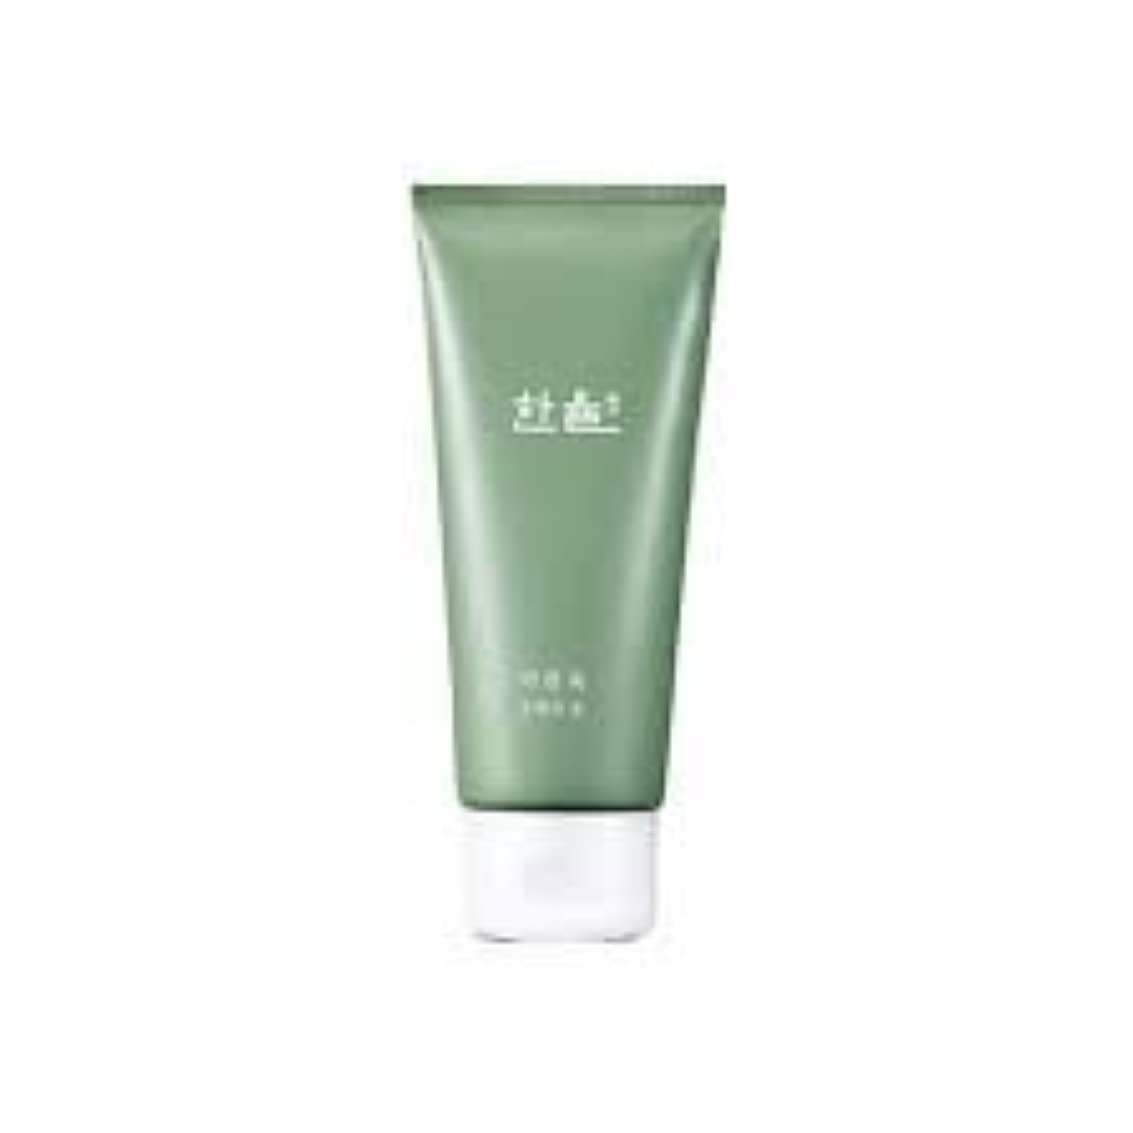 蒸し器銃見せますHanyul Pure Artemisia Cleansing Foam 6.1 Ounce [並行輸入品]